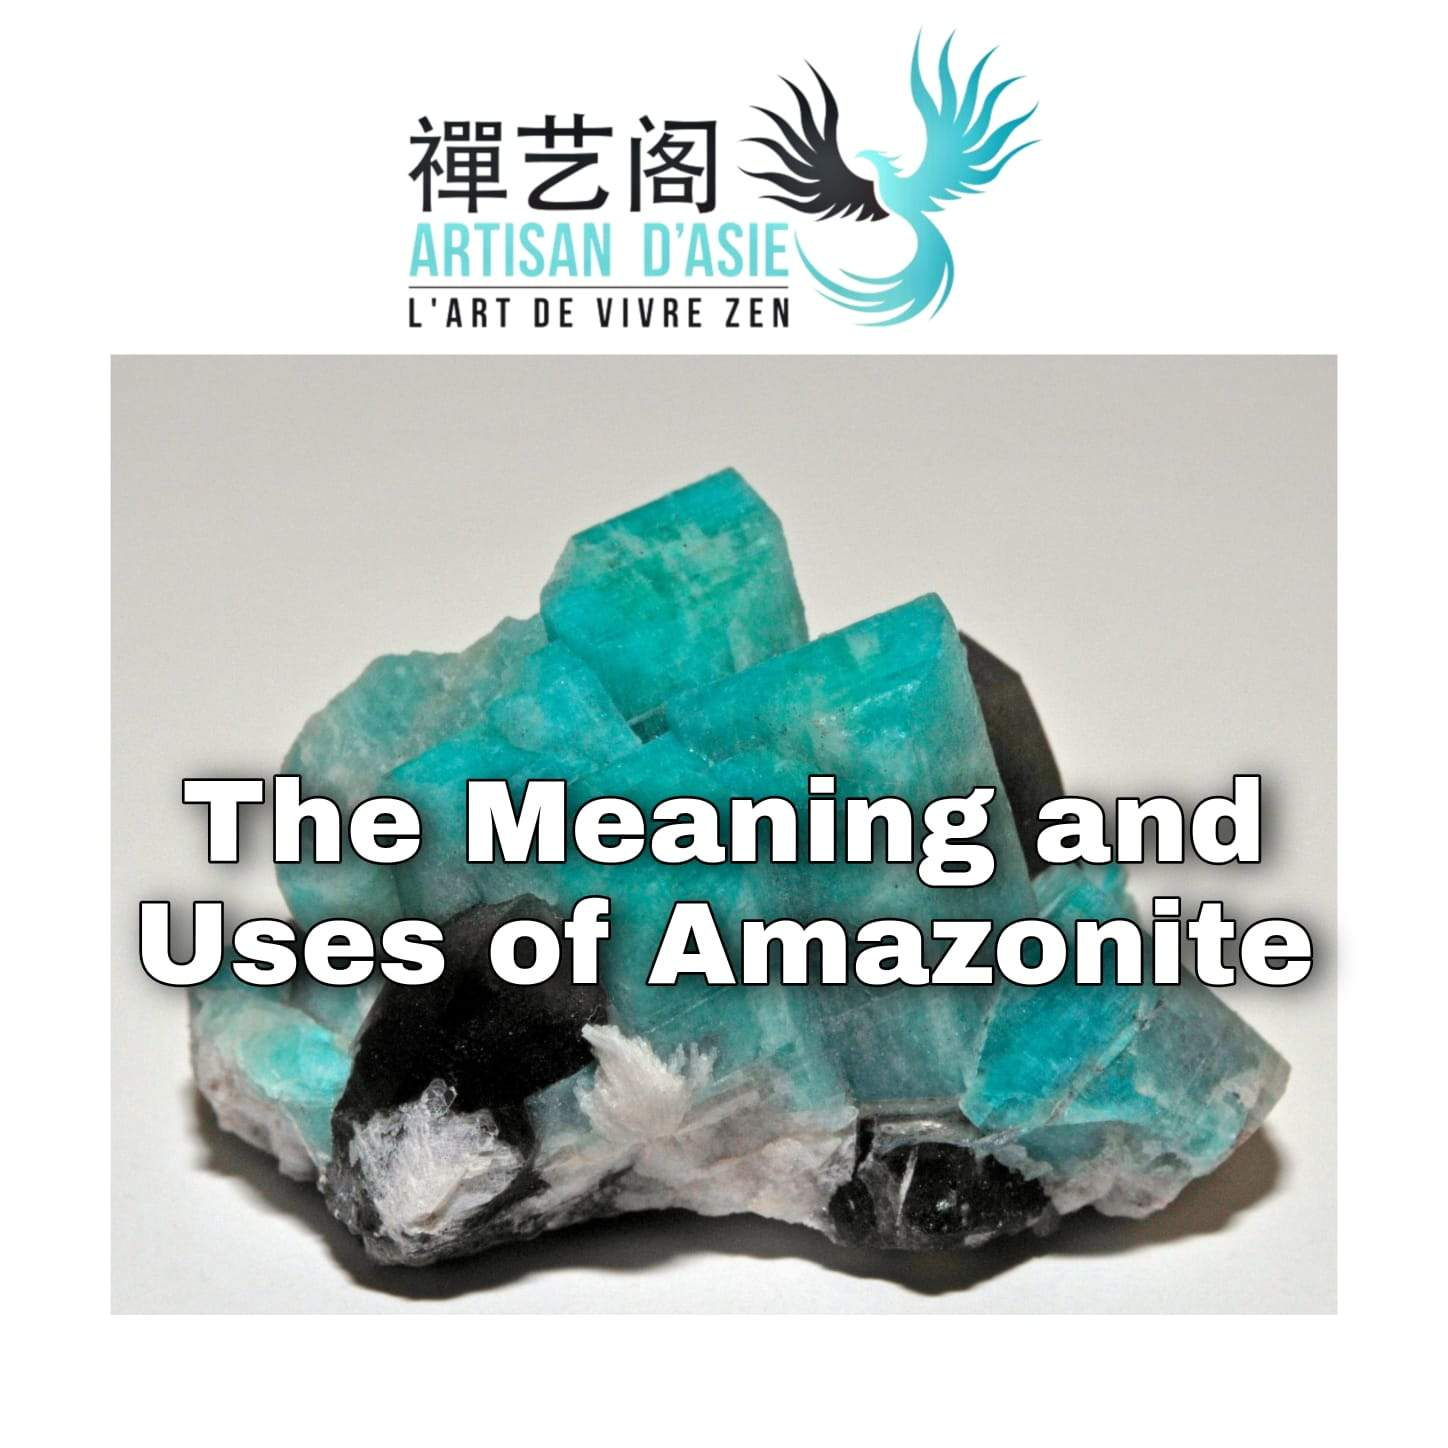 The Meaning and Uses of Amazonite